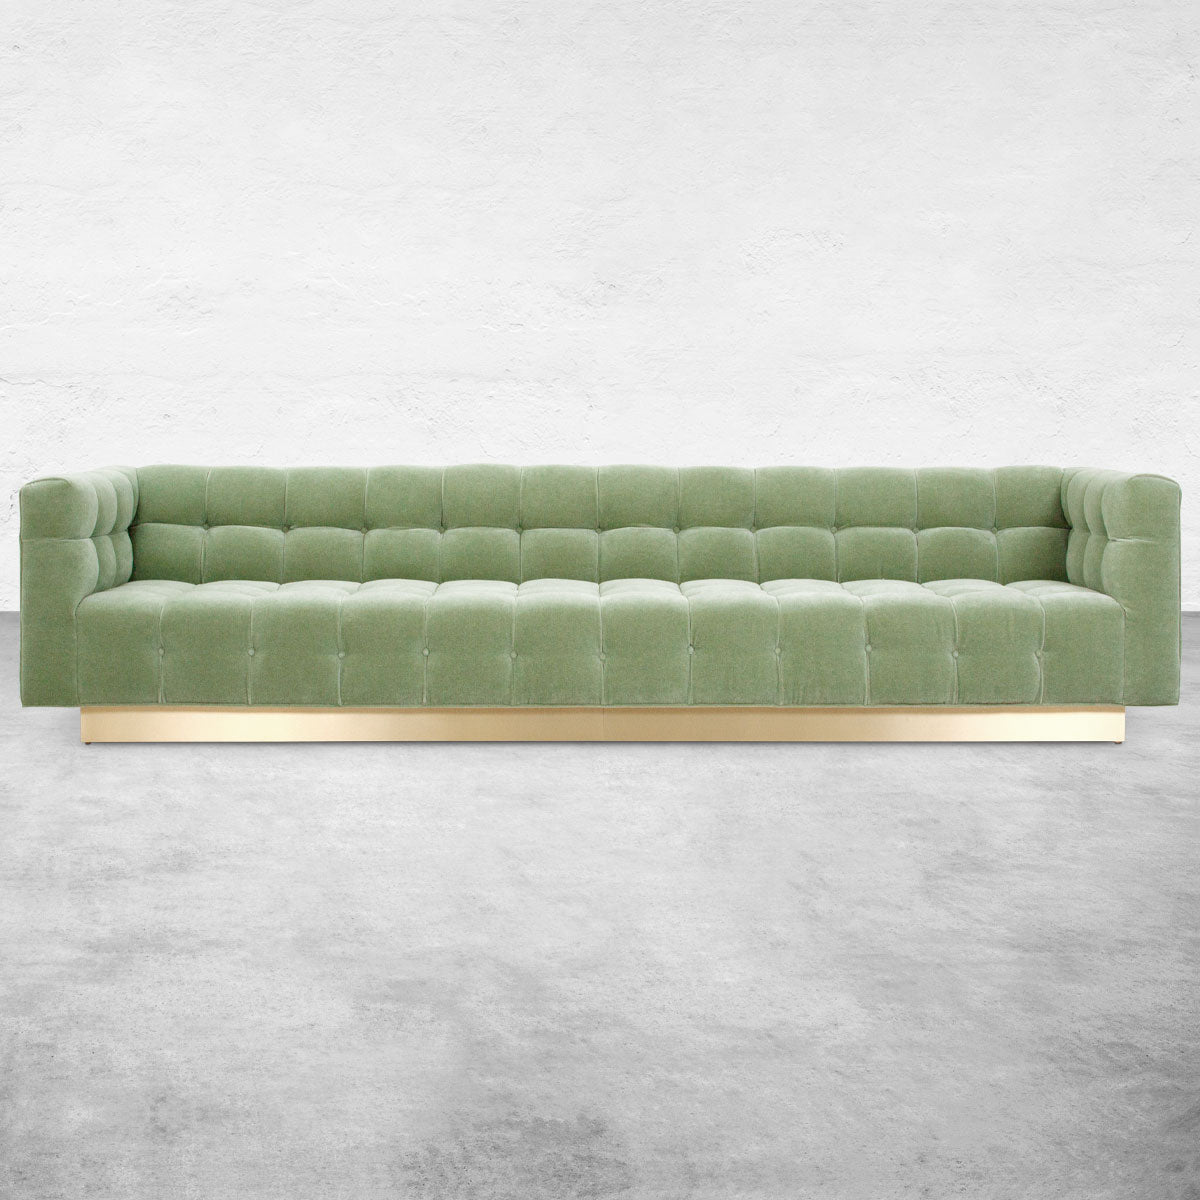 Delano Sofa in Mohair